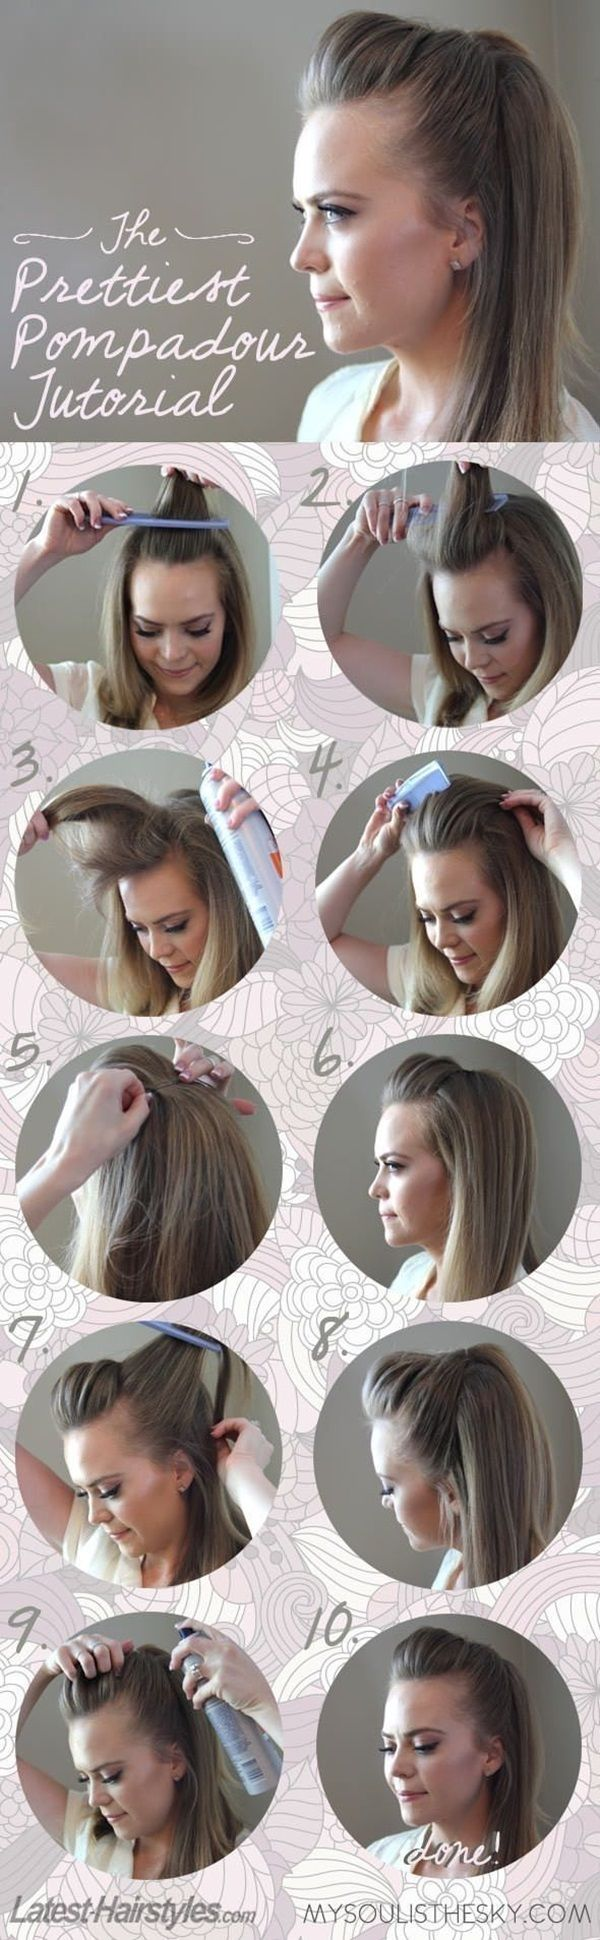 Best 25 five minute hairstyles ideas on pinterest easy pony 50 simple five minute hairstyles to snatch the attention diy solutioingenieria Image collections